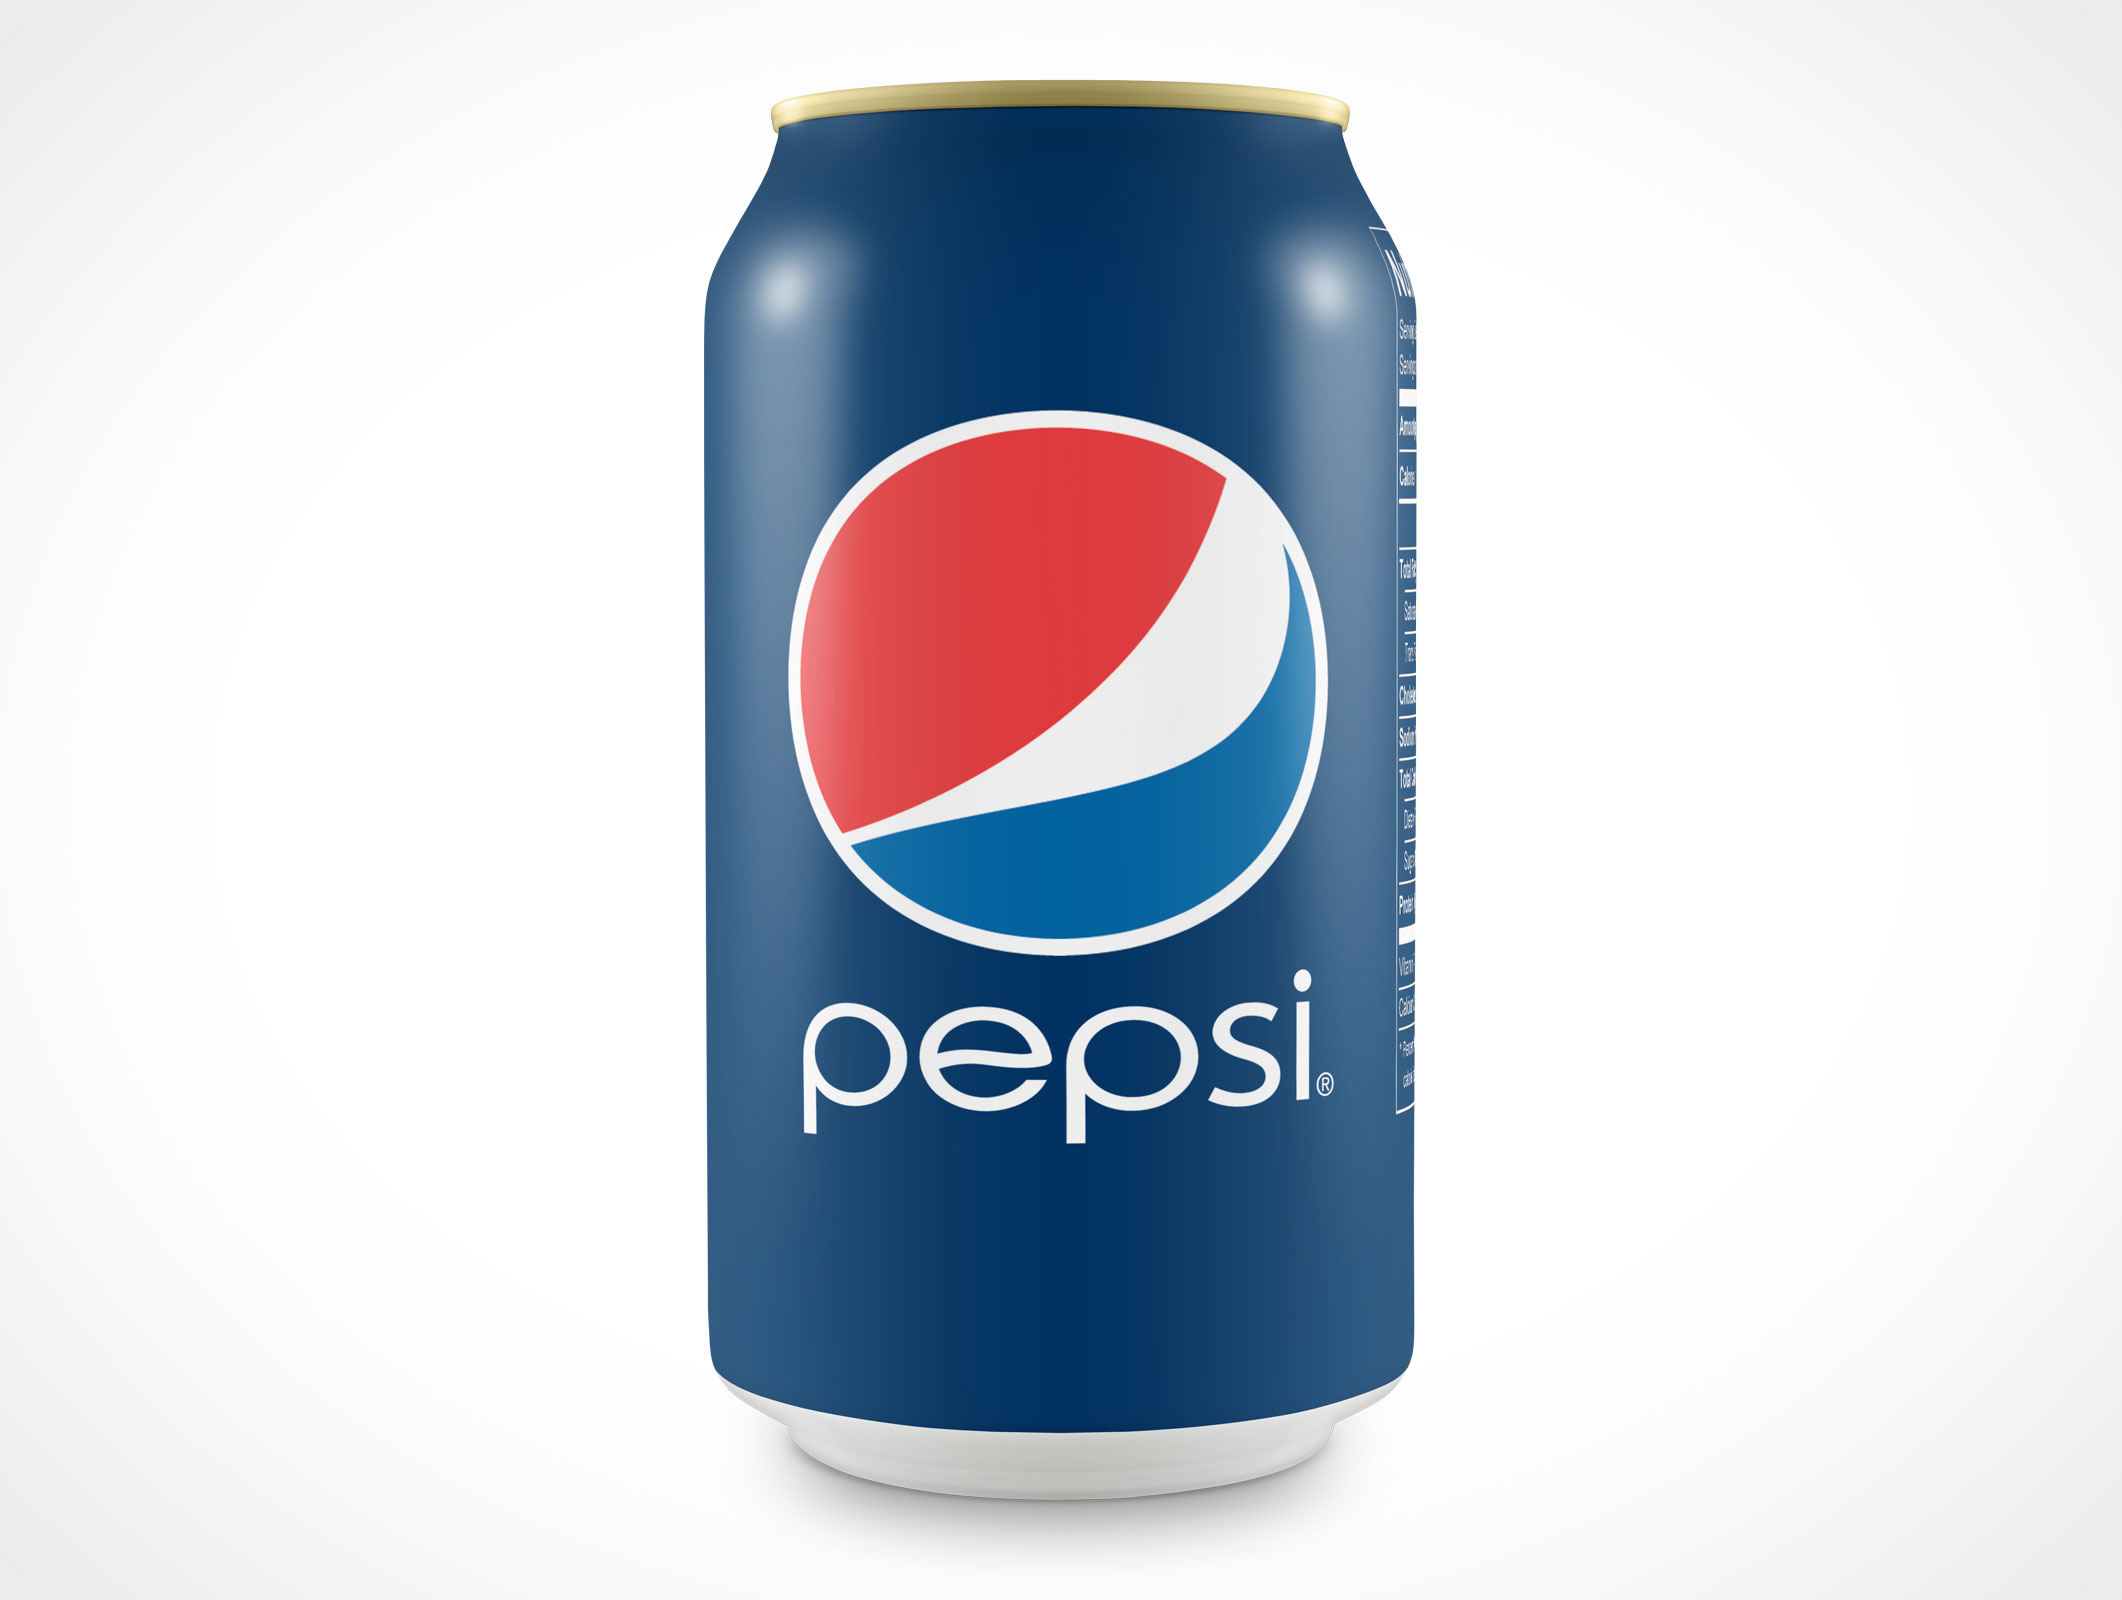 Pictures Of Soda Cans - ClipArt Best